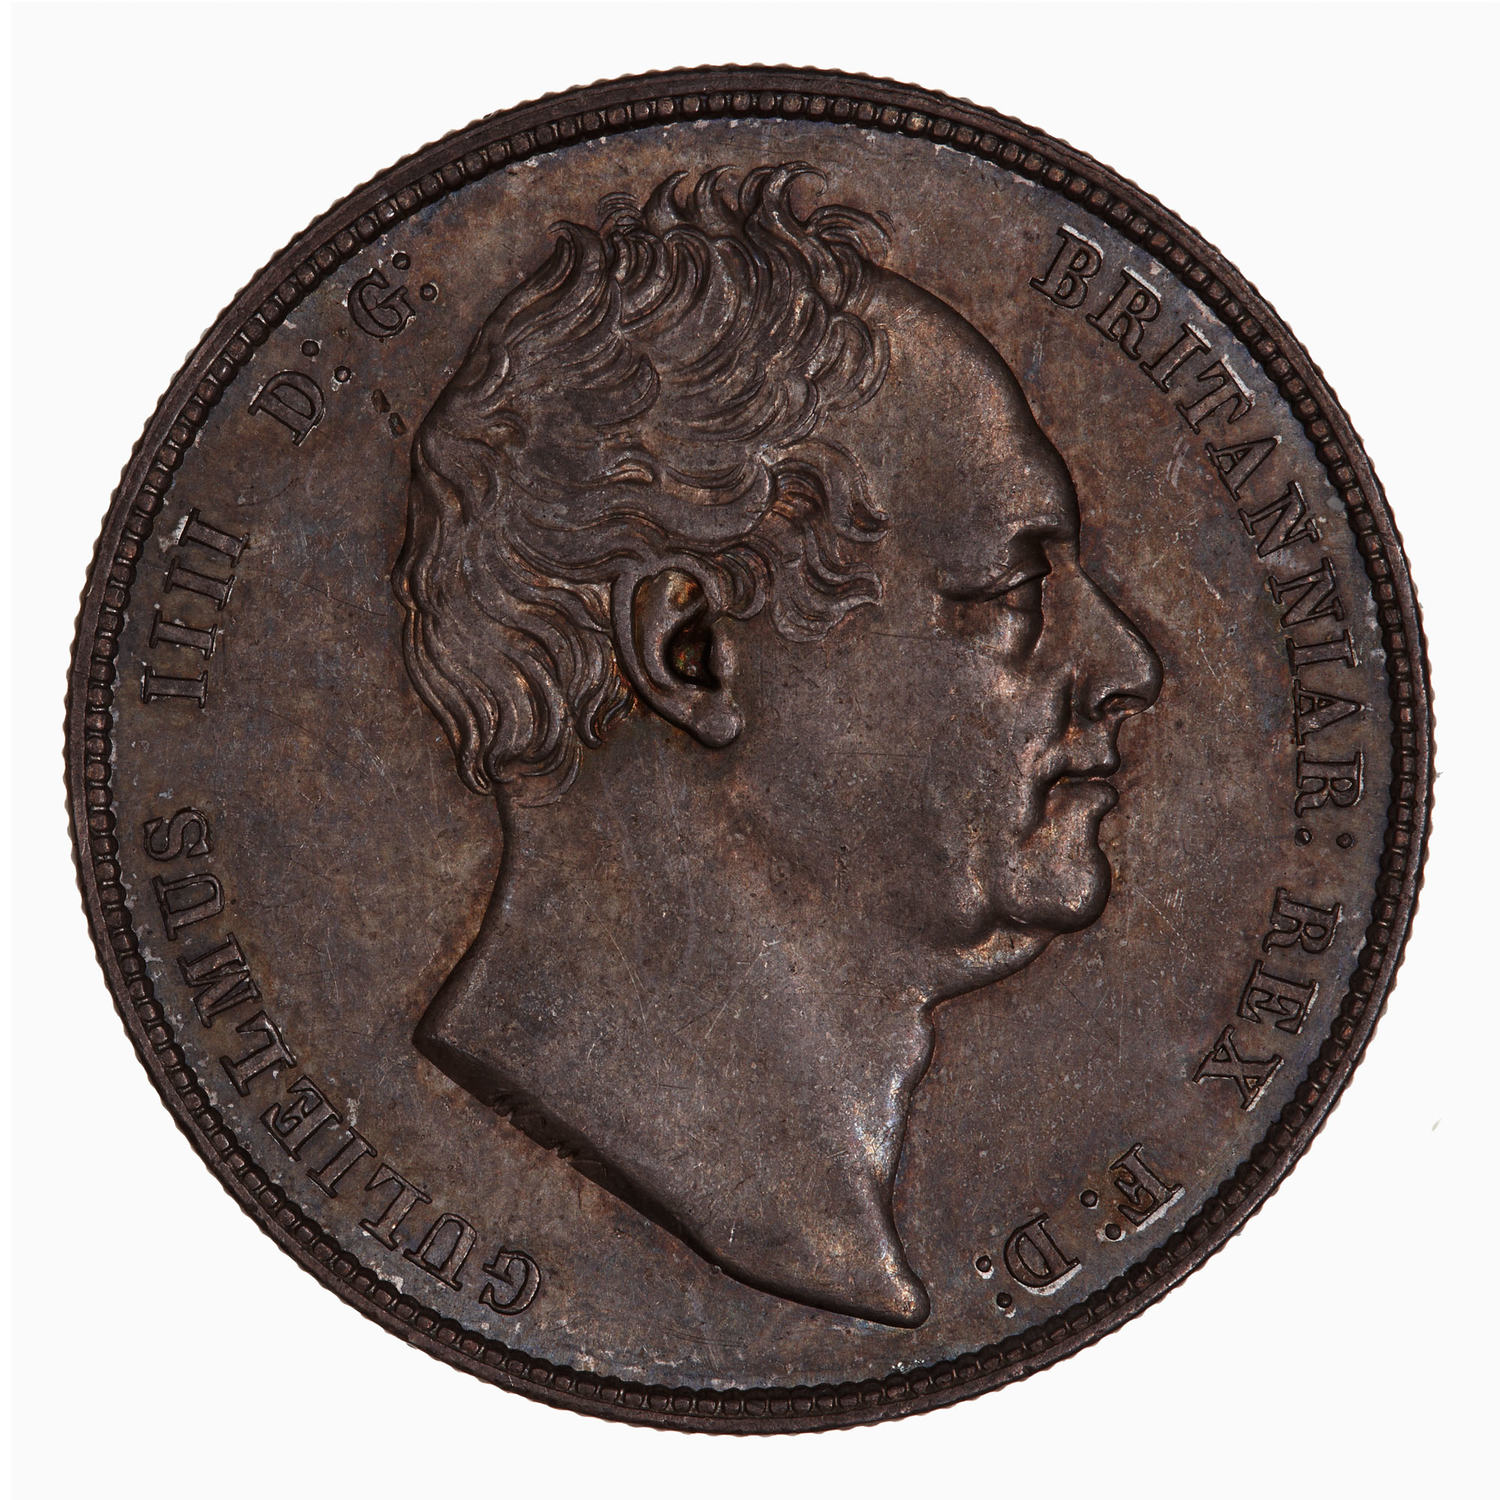 Halfcrown 1837: Photo Coin - Halfcrown, William IV, Great Britain, 1837